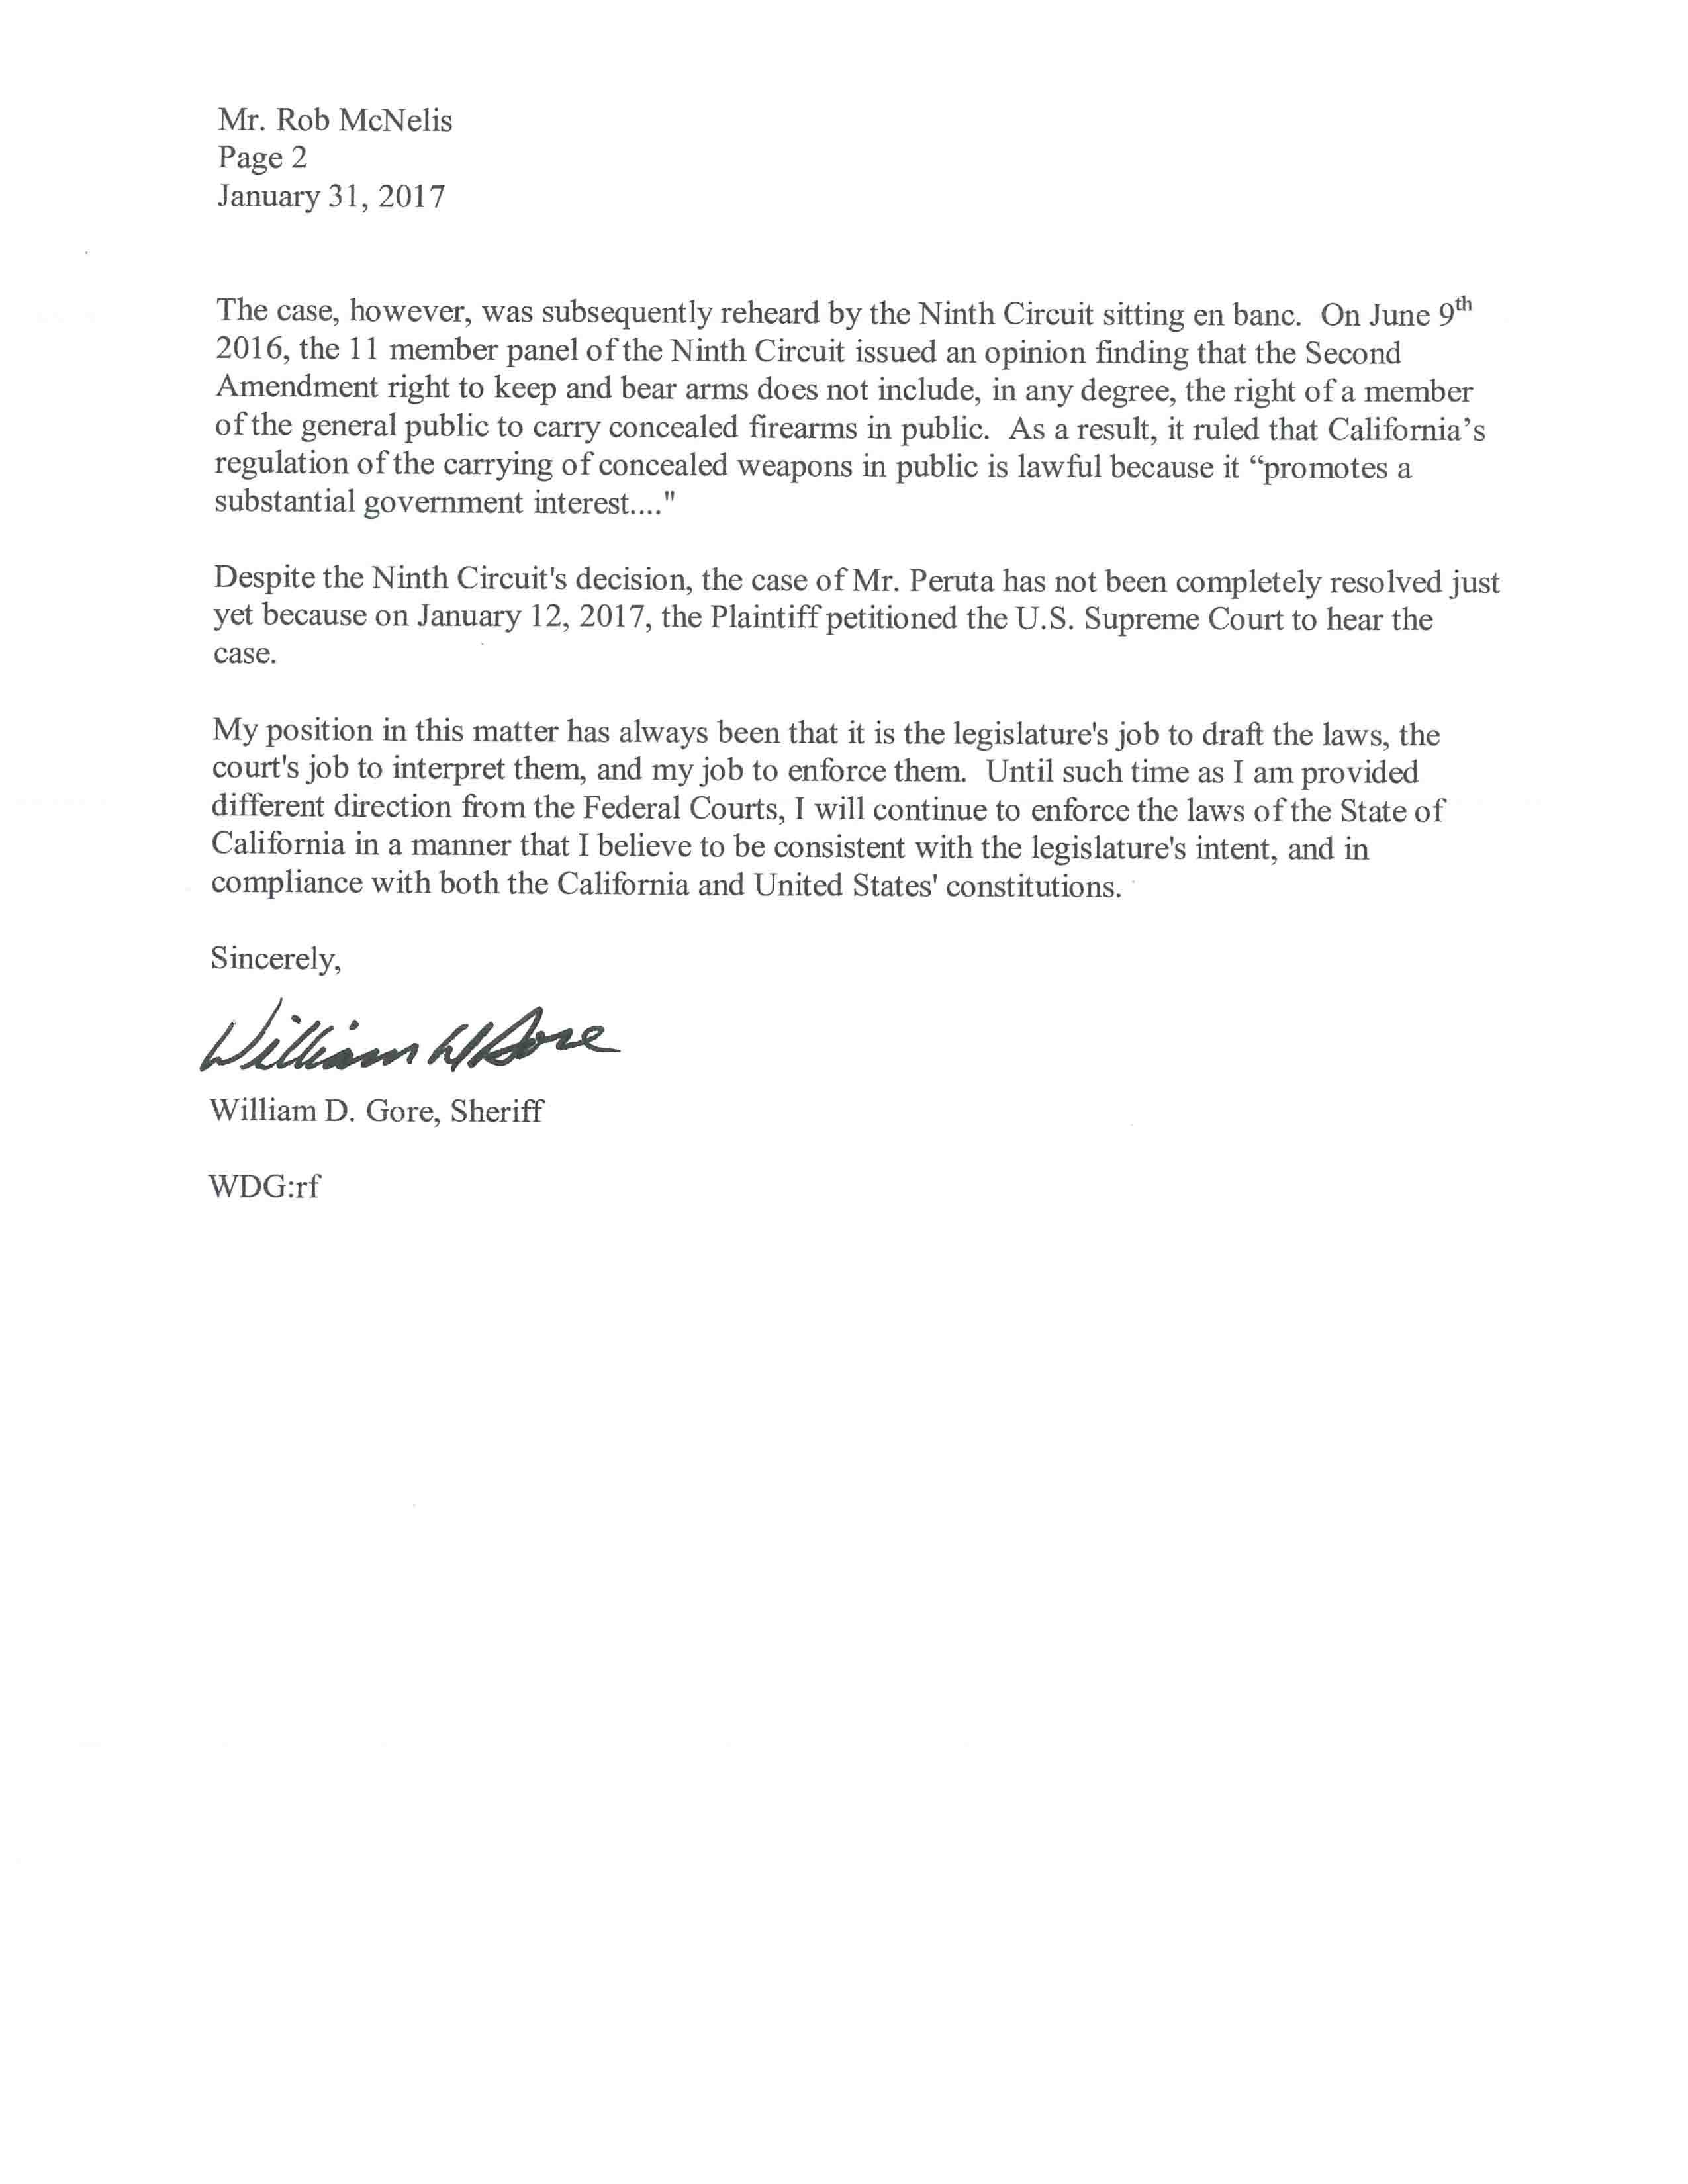 Gore to McNelis Letter #2-2